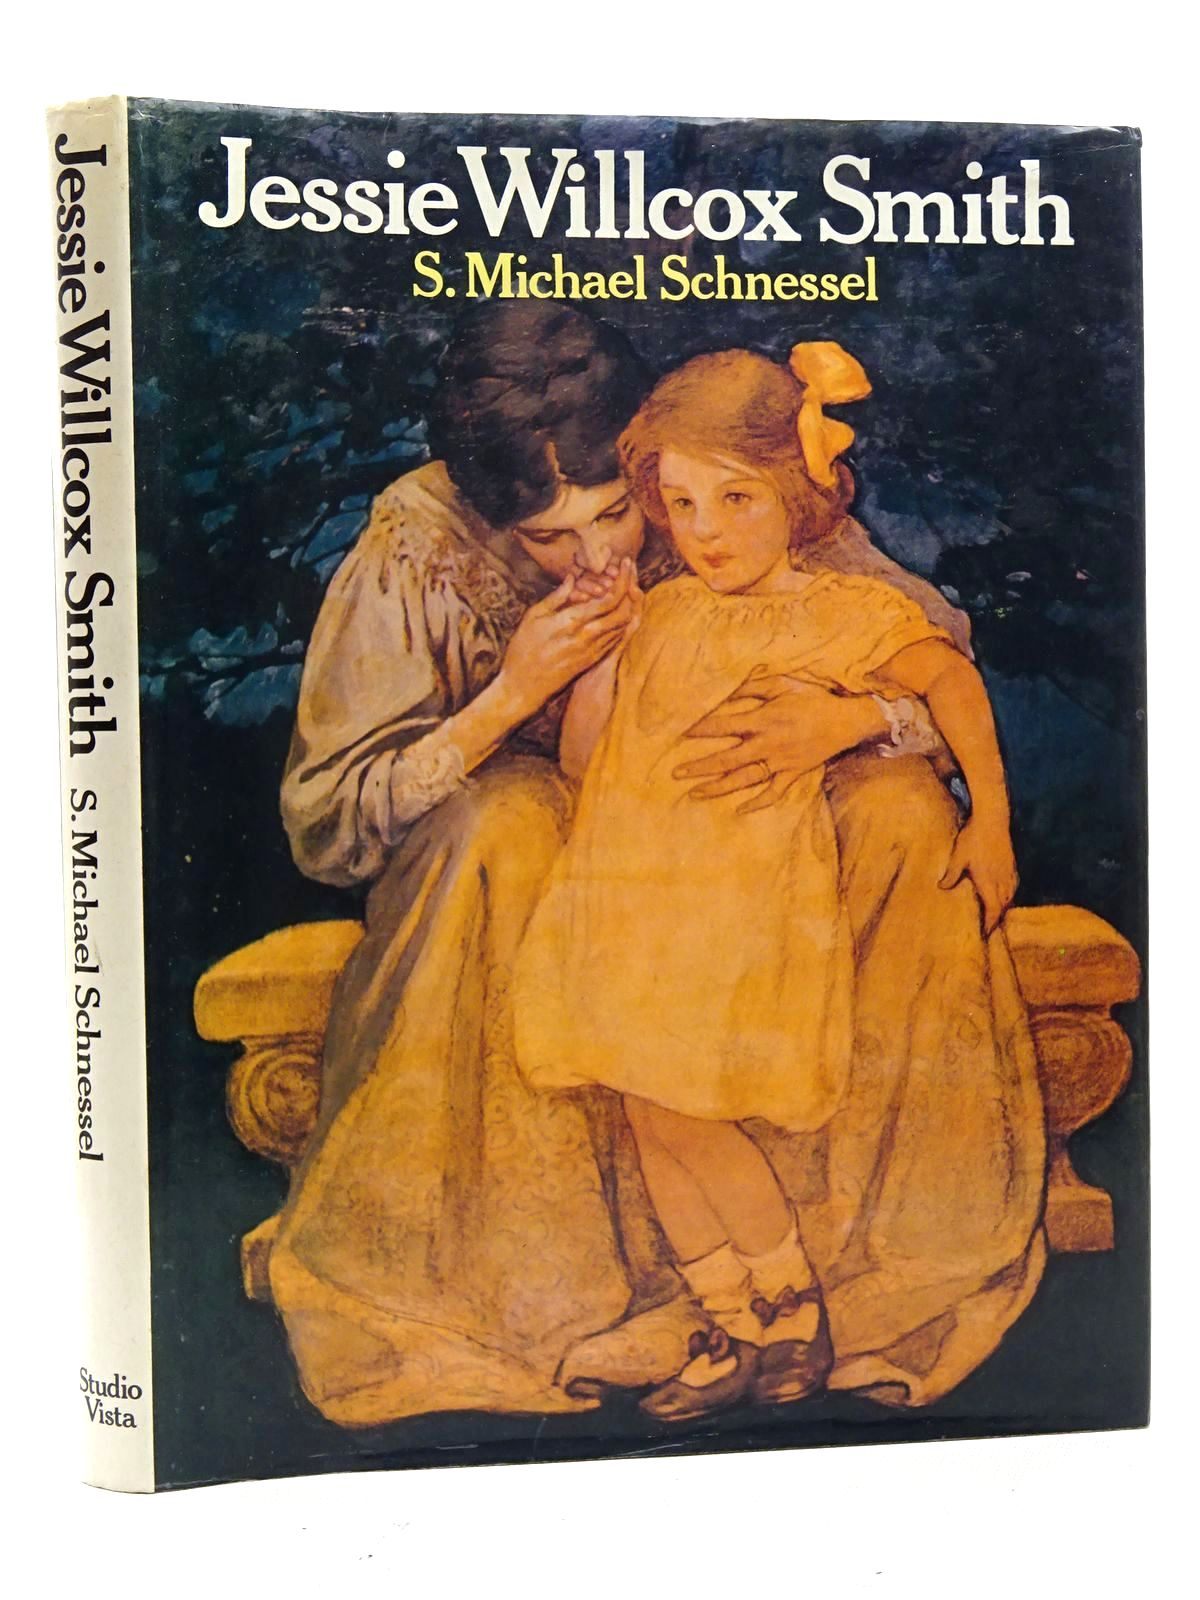 Photo of JESSIE WILLCOX SMITH written by Schnessel, S.Michael illustrated by Smith, Jessie Willcox published by Studio Vista (STOCK CODE: 1317379)  for sale by Stella & Rose's Books